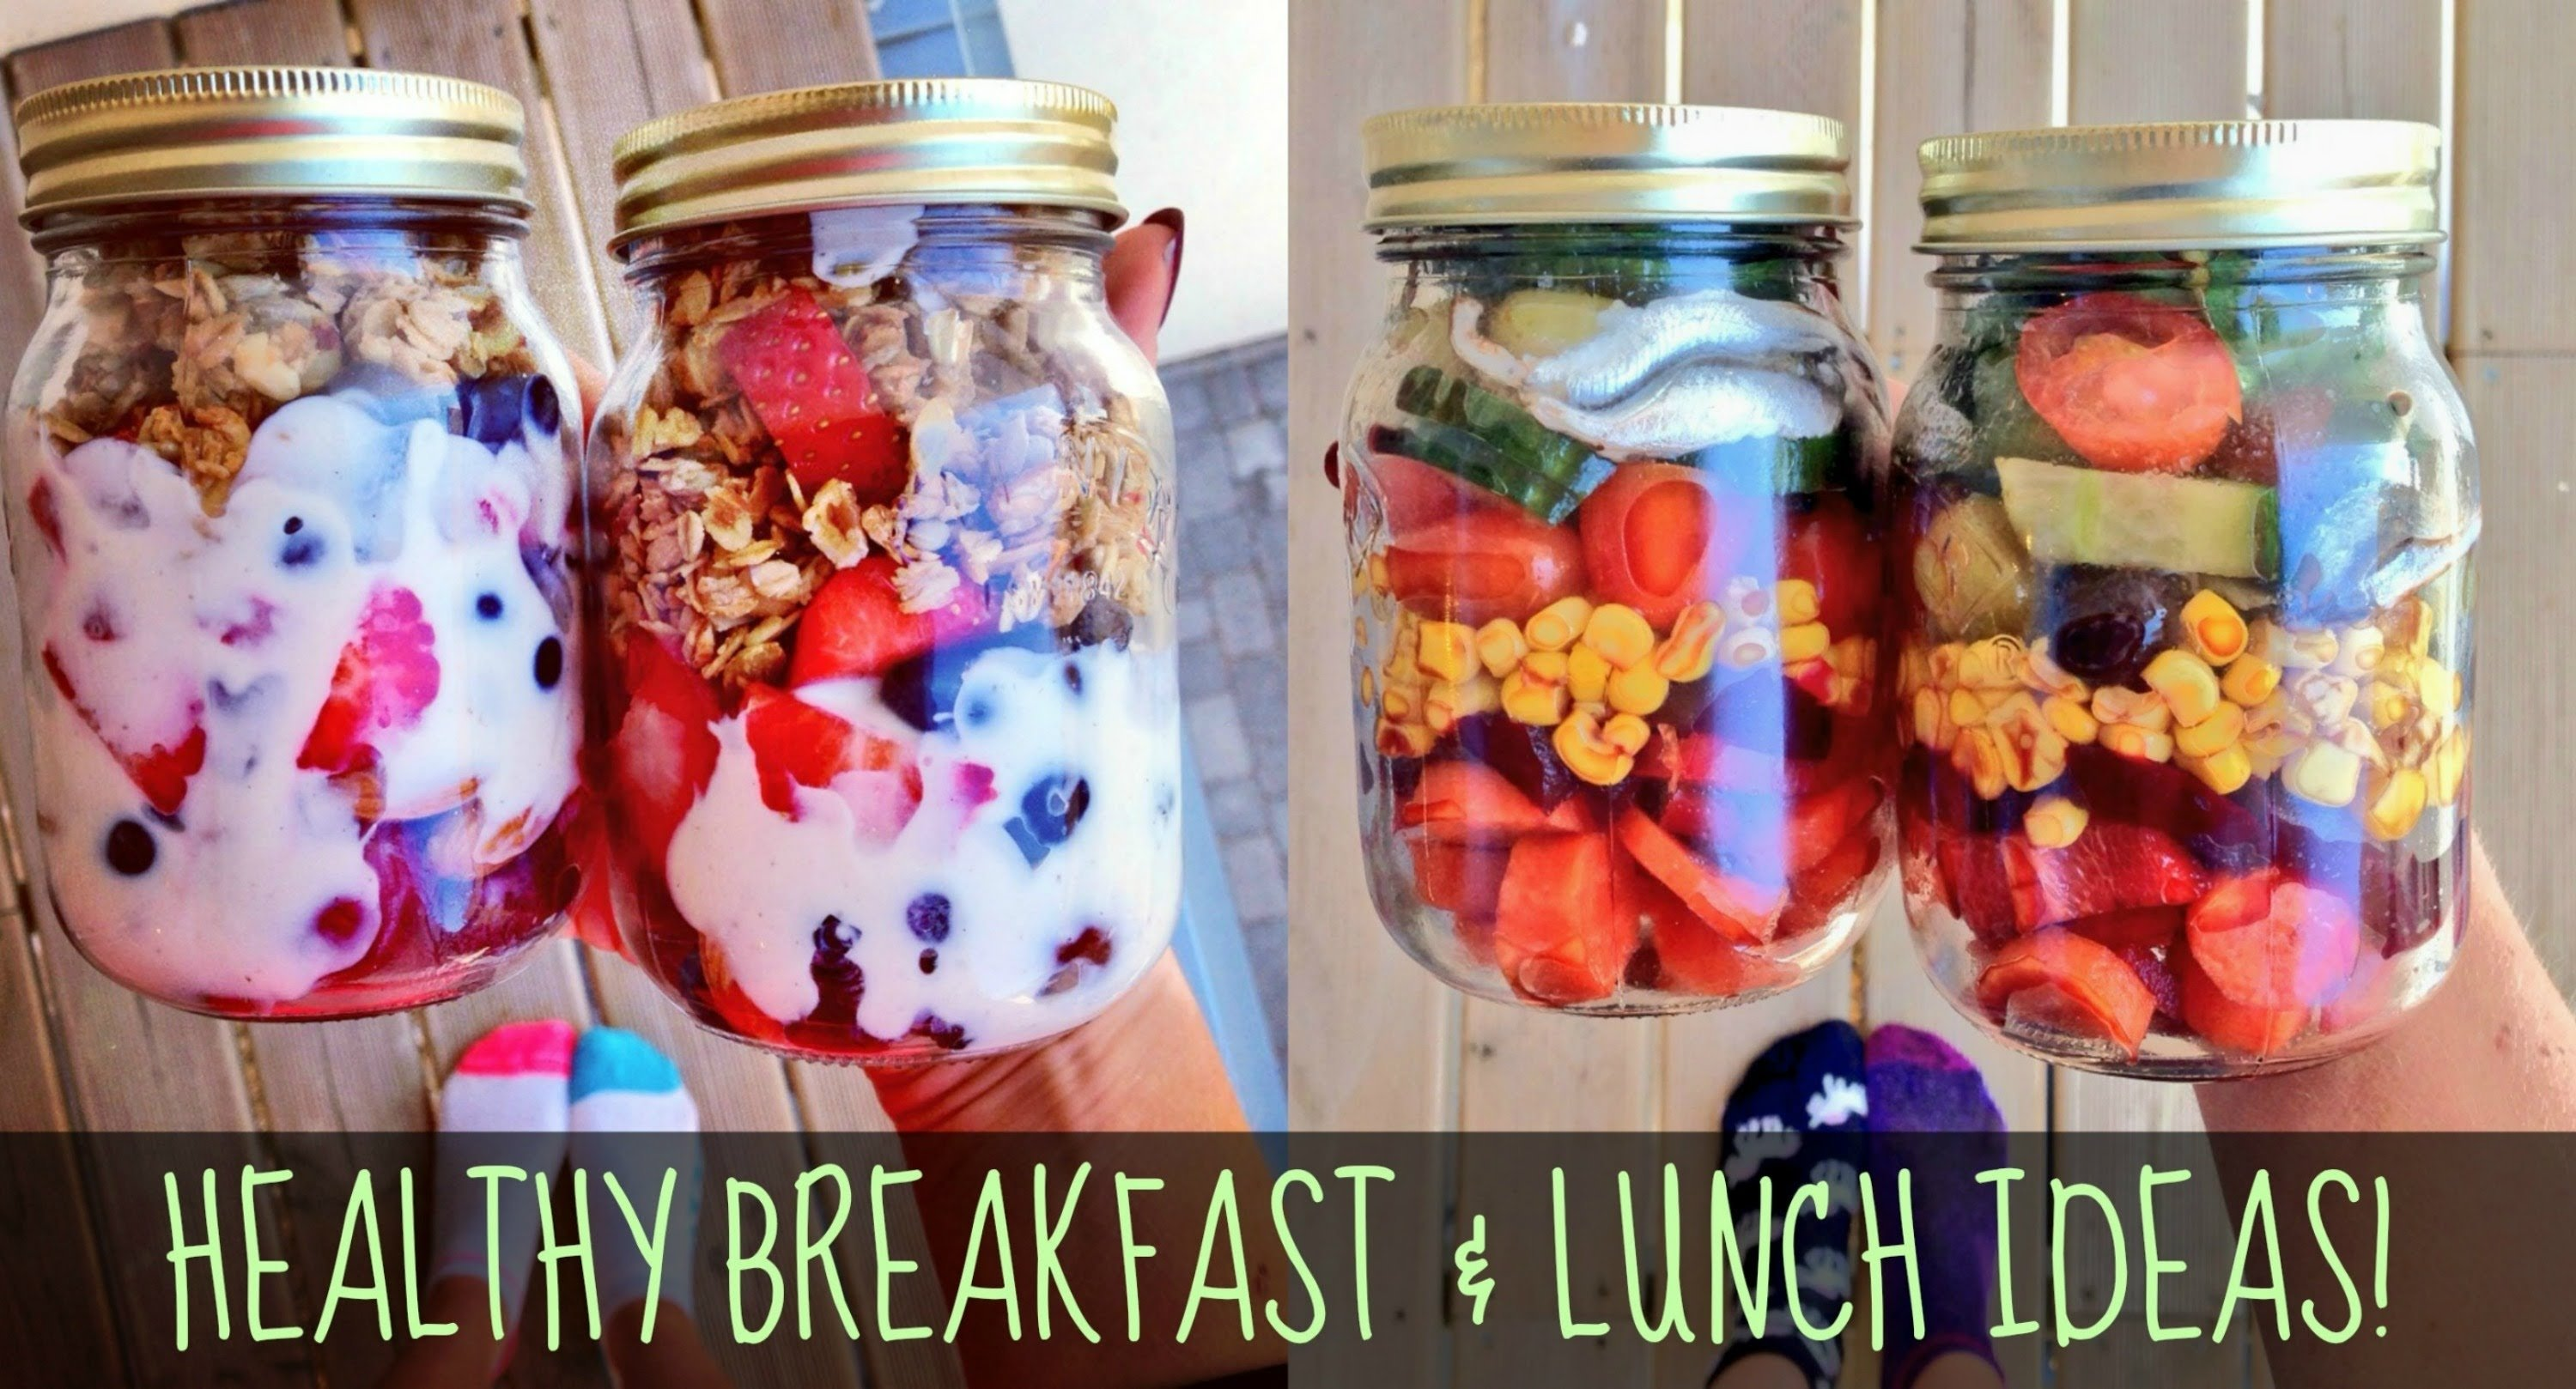 10 Perfect Bring Lunch To Work Ideas healthy breakfast and lunch ideas for school work youtube 4 2020